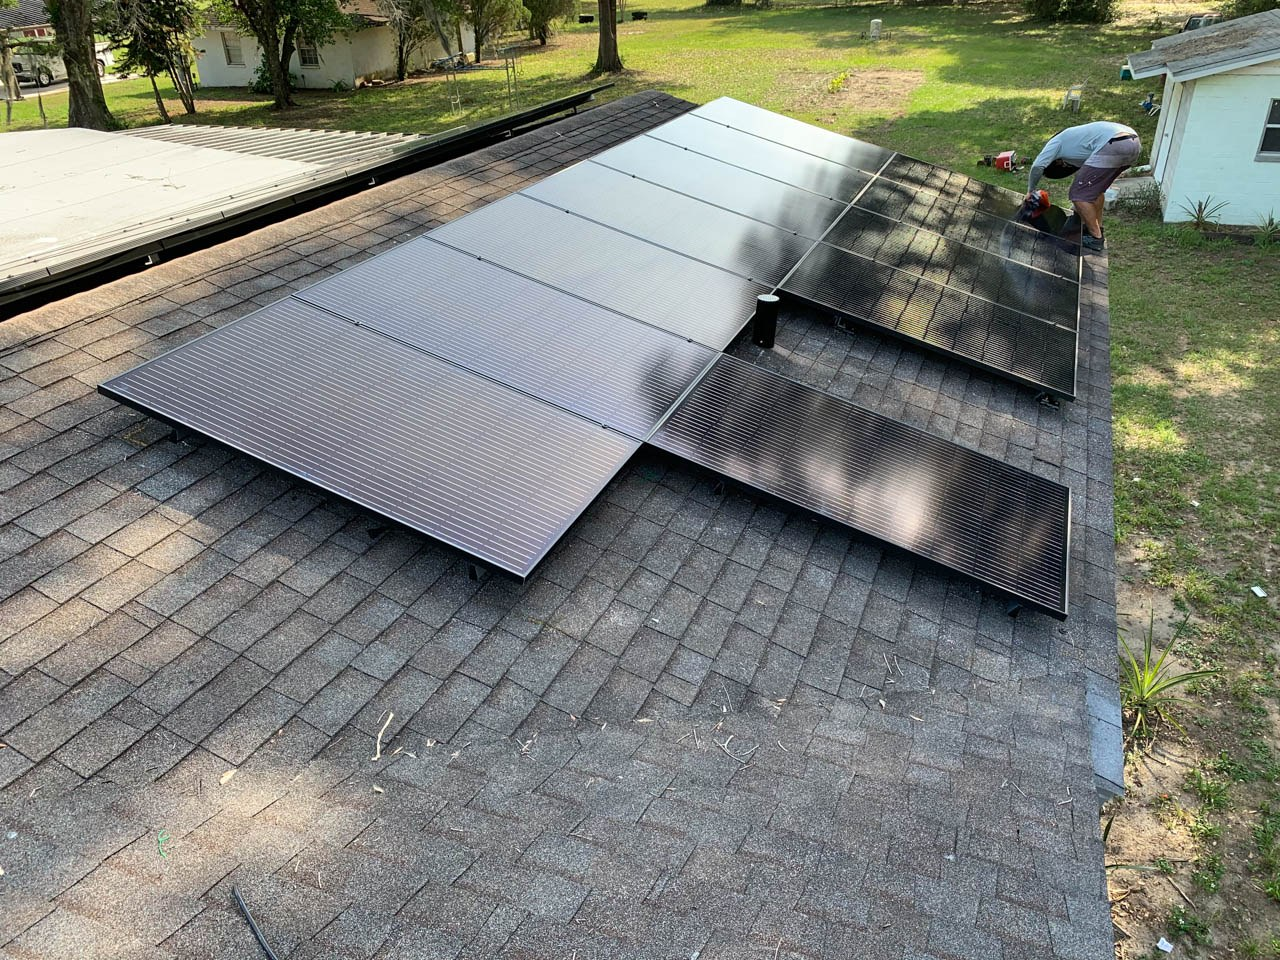 Solar array installed on a shingle roof in Thonotosassa, FL